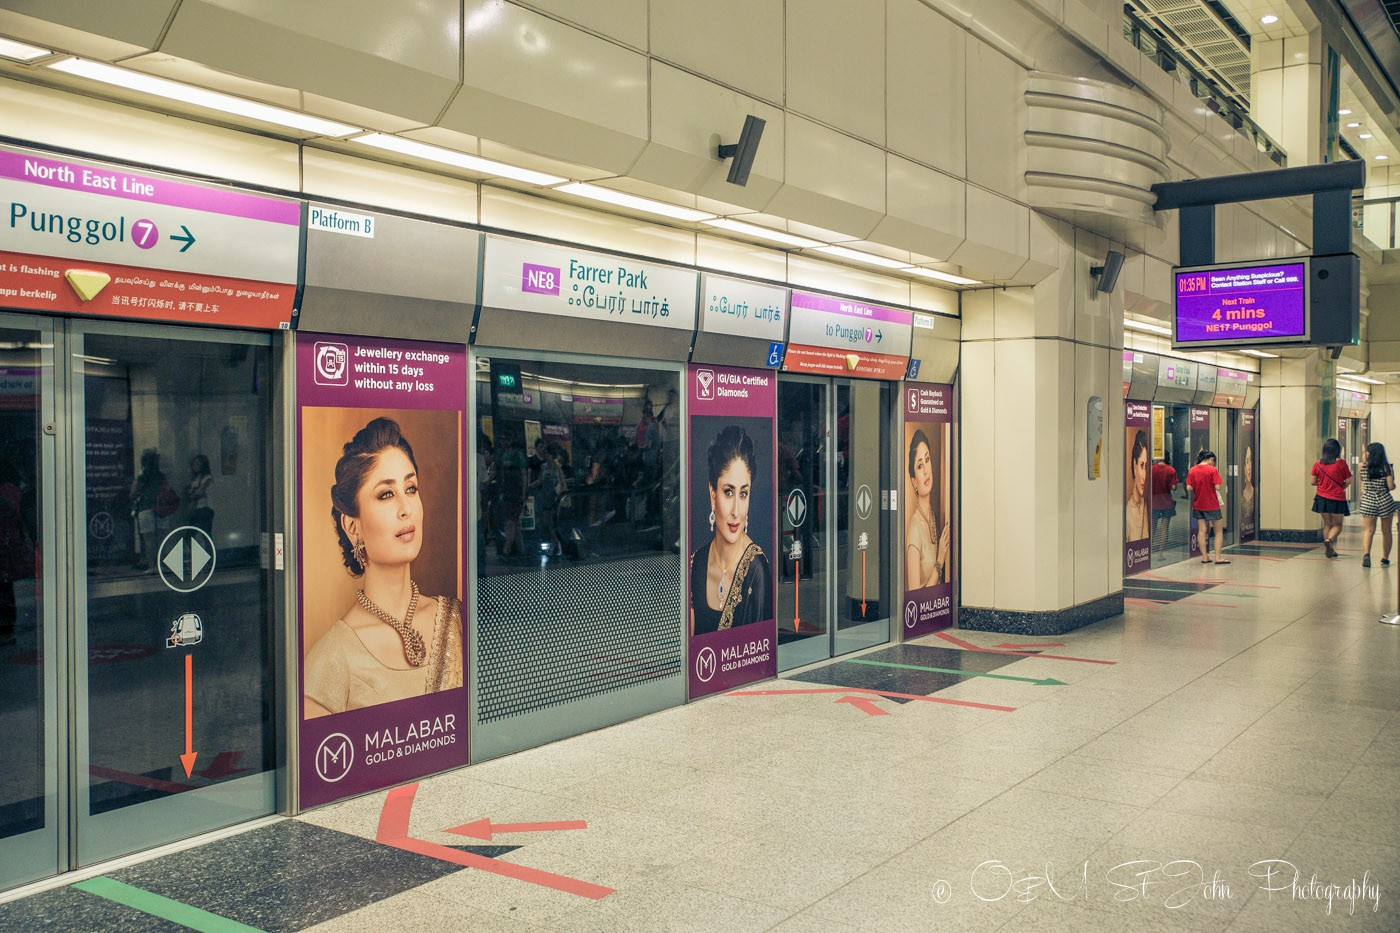 Stopover in Singapore: Inside the MRT in Singapore